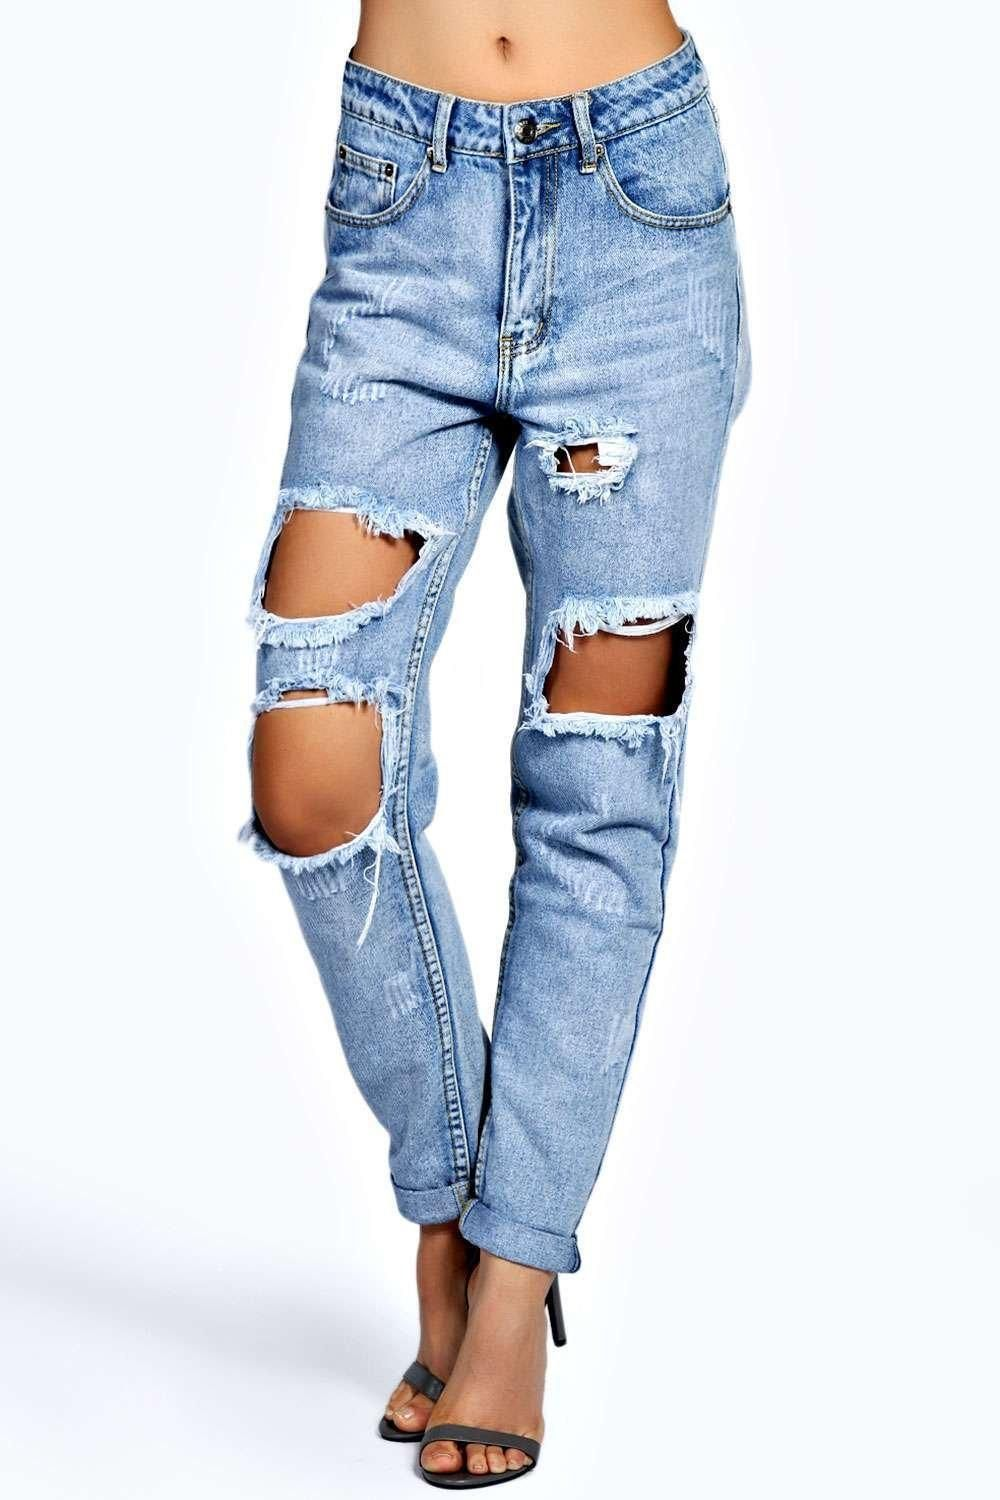 dc174ed4aaf548 Petite Brianna Extreme Ripped Boyfriend Jeans | makeover | Light ...